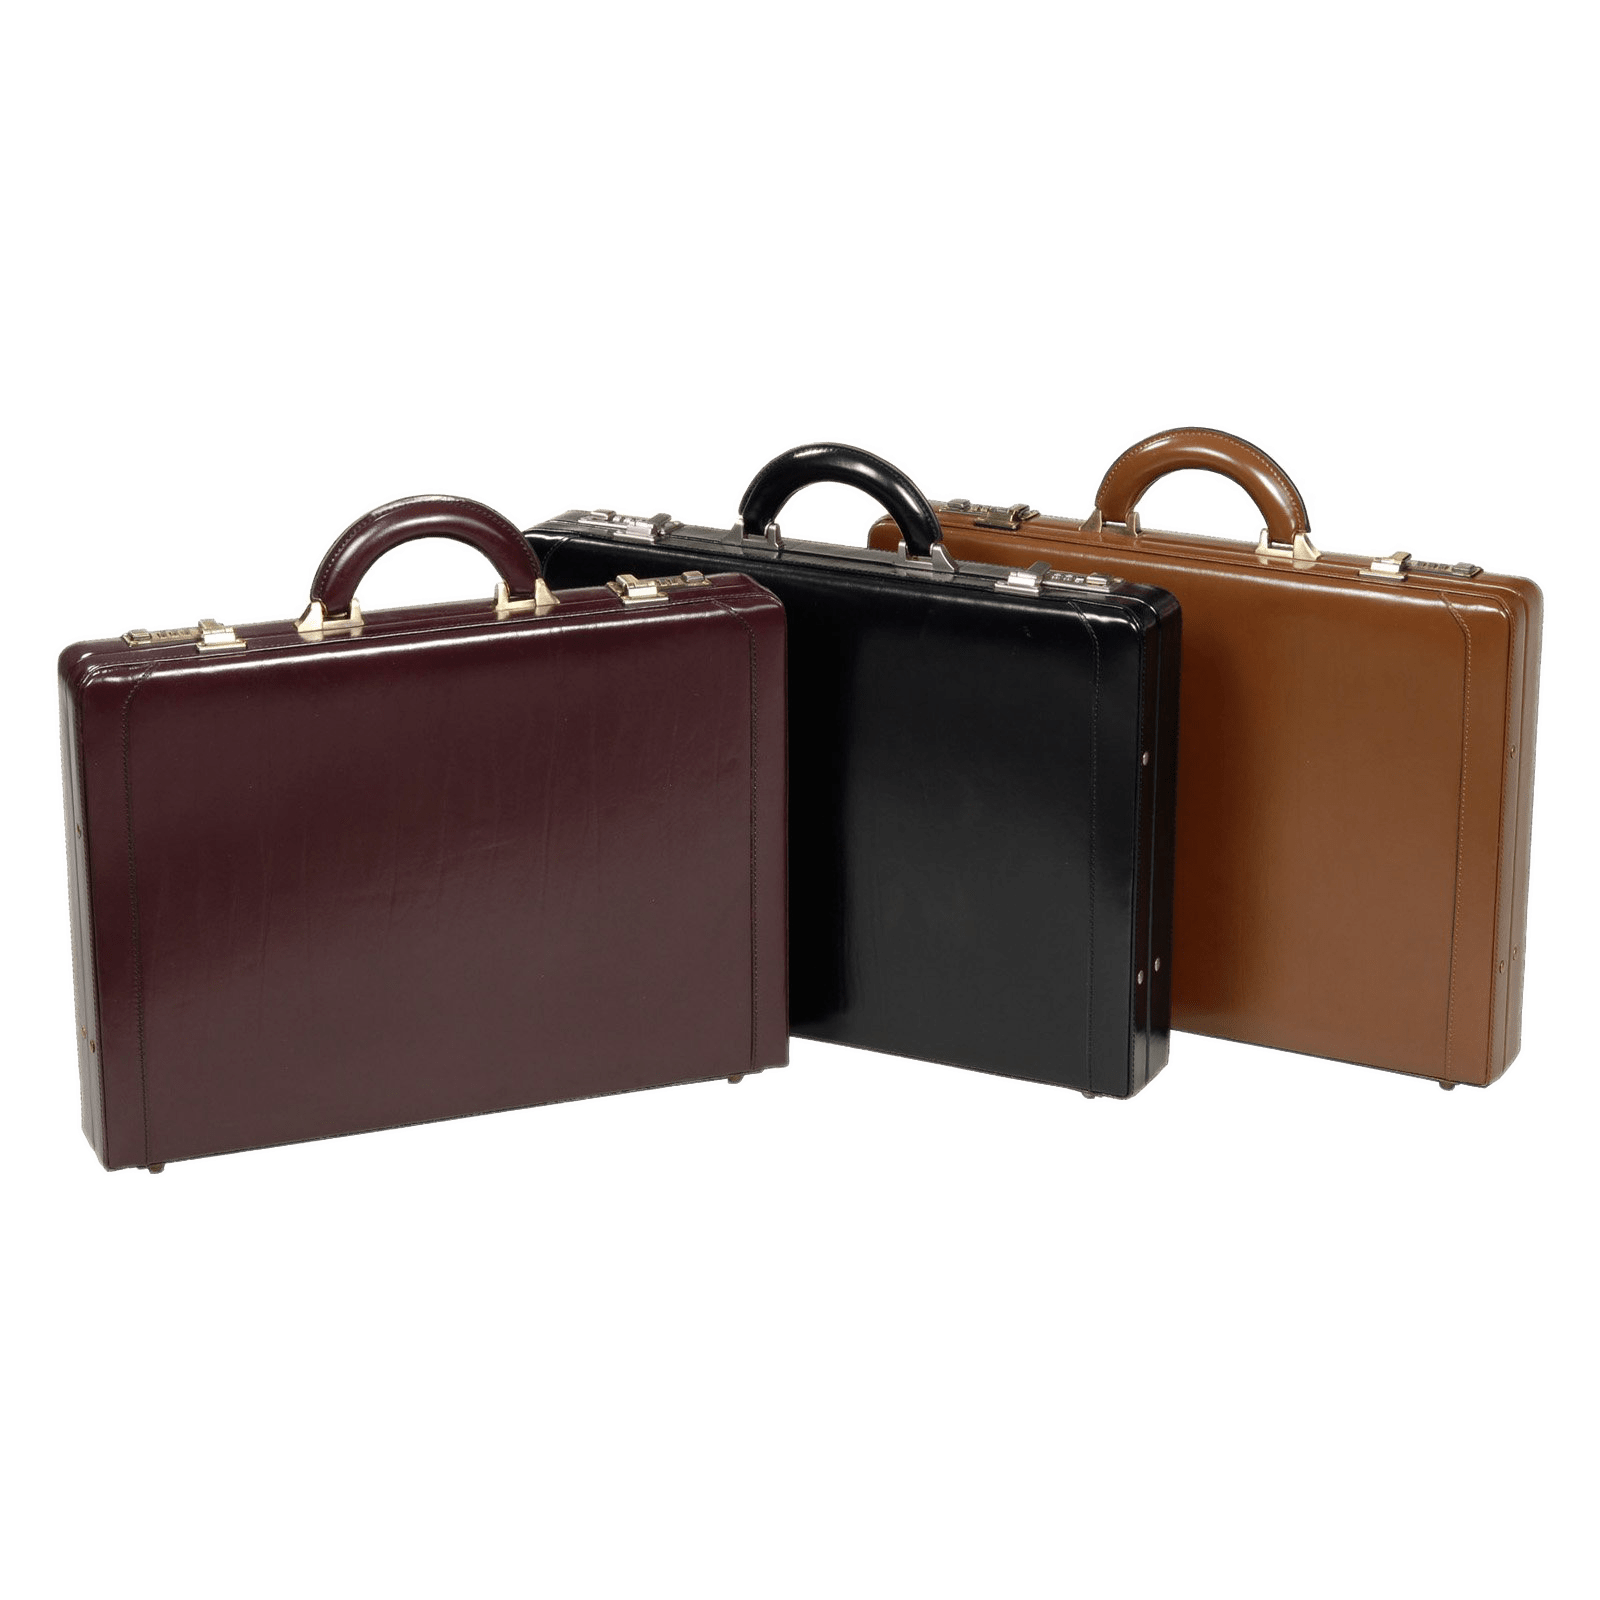 Png briefcase. Collection of briefcases transparent